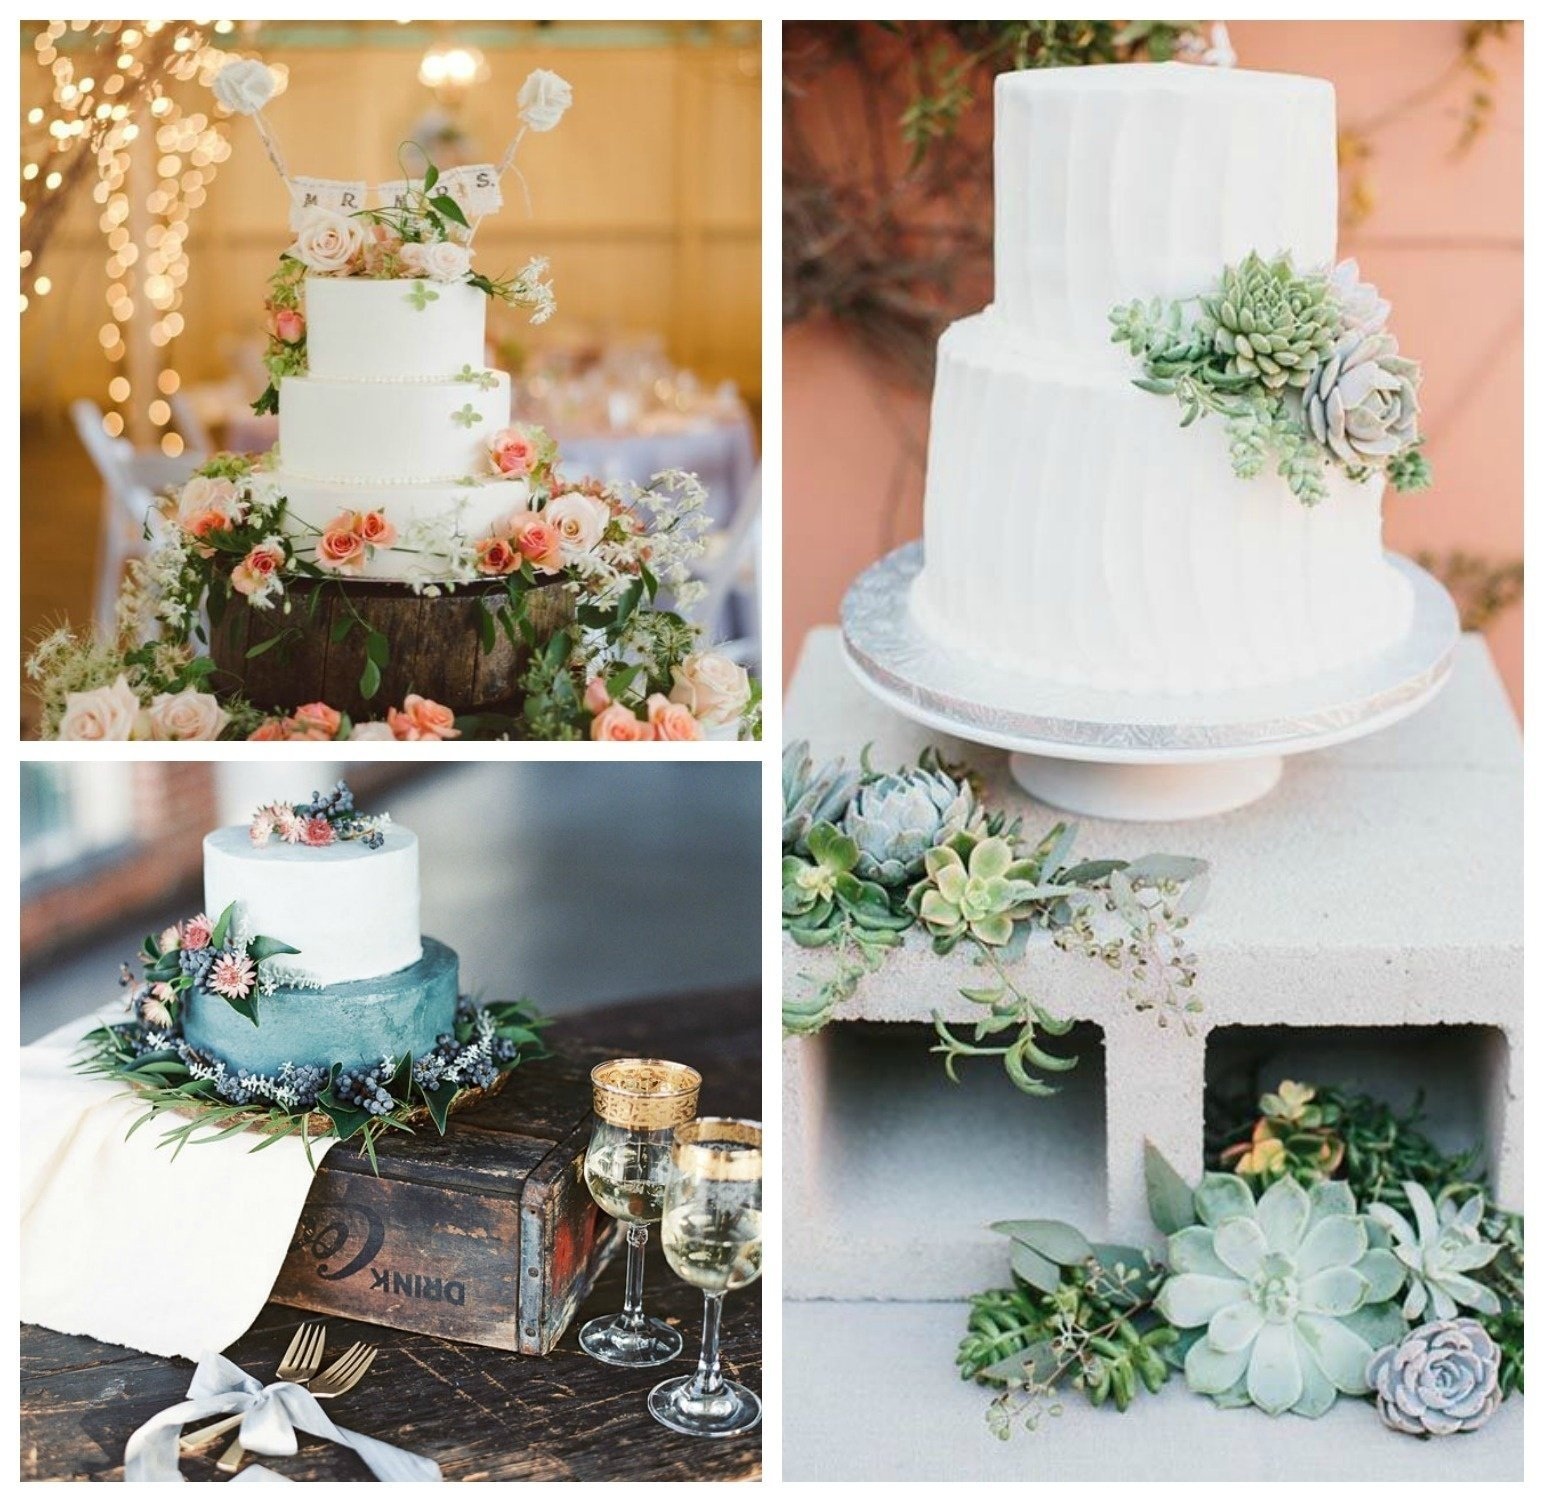 10 Fantastic Wedding Cake Table Decoration Ideas spruce up your cake table our favorite ideas for wedding cake table